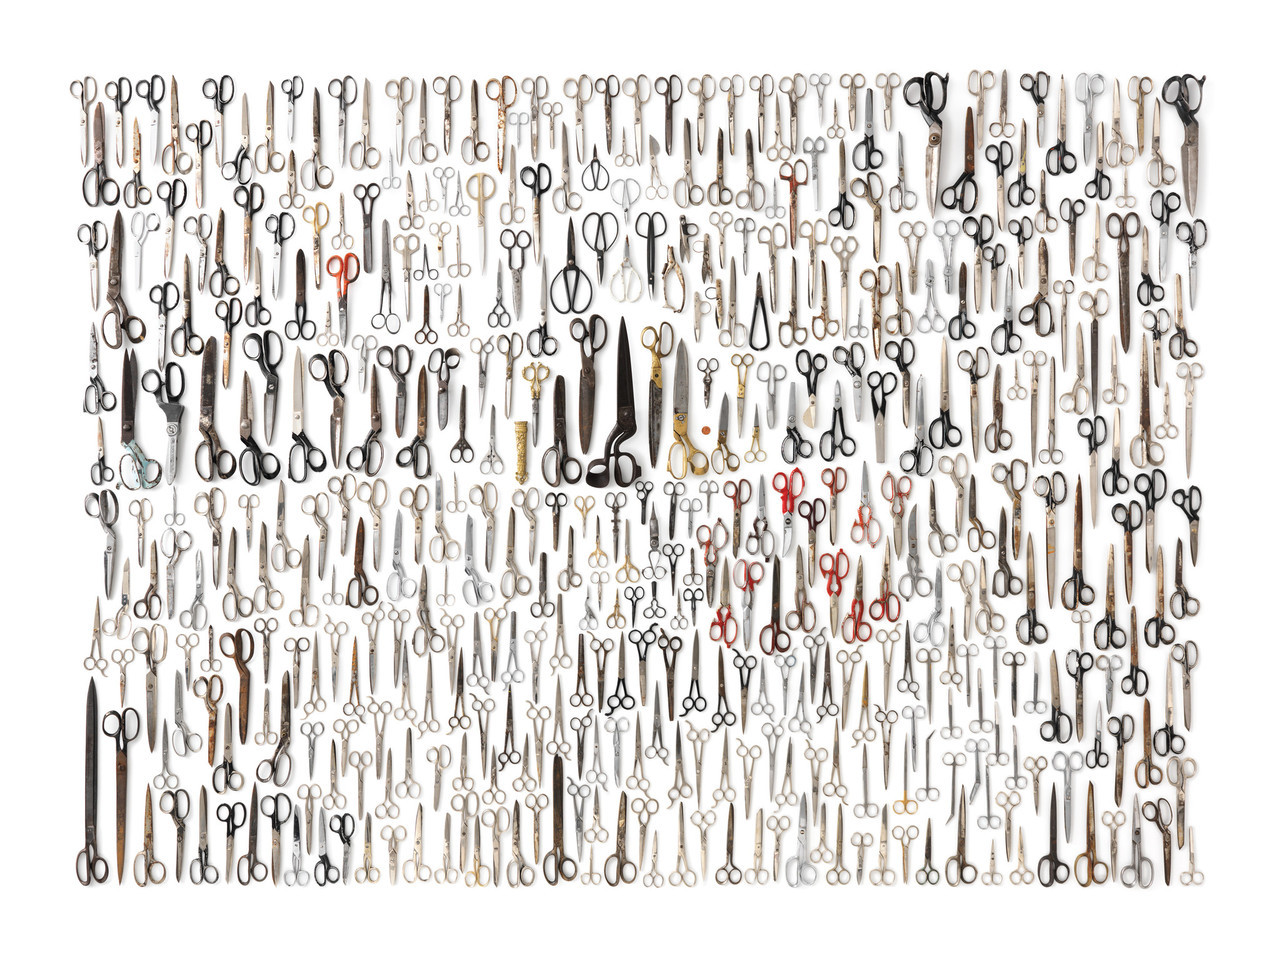 Jigsaw company lookup - New York Puzzle Company Scissor Collection Jigsaw Puzzle